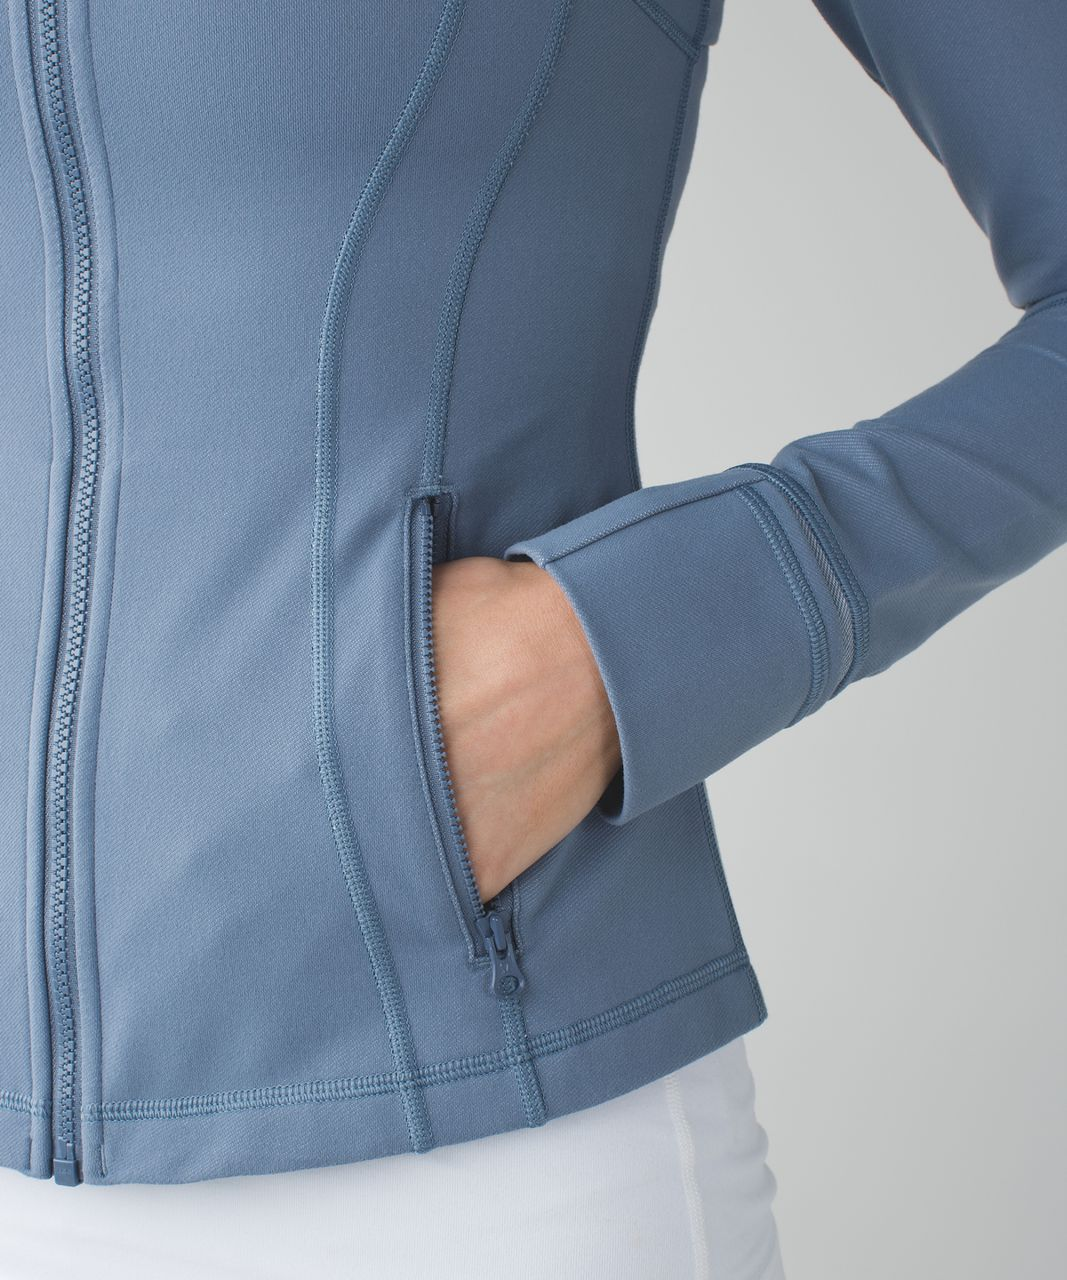 Lululemon Define Jacket - Blue Denim